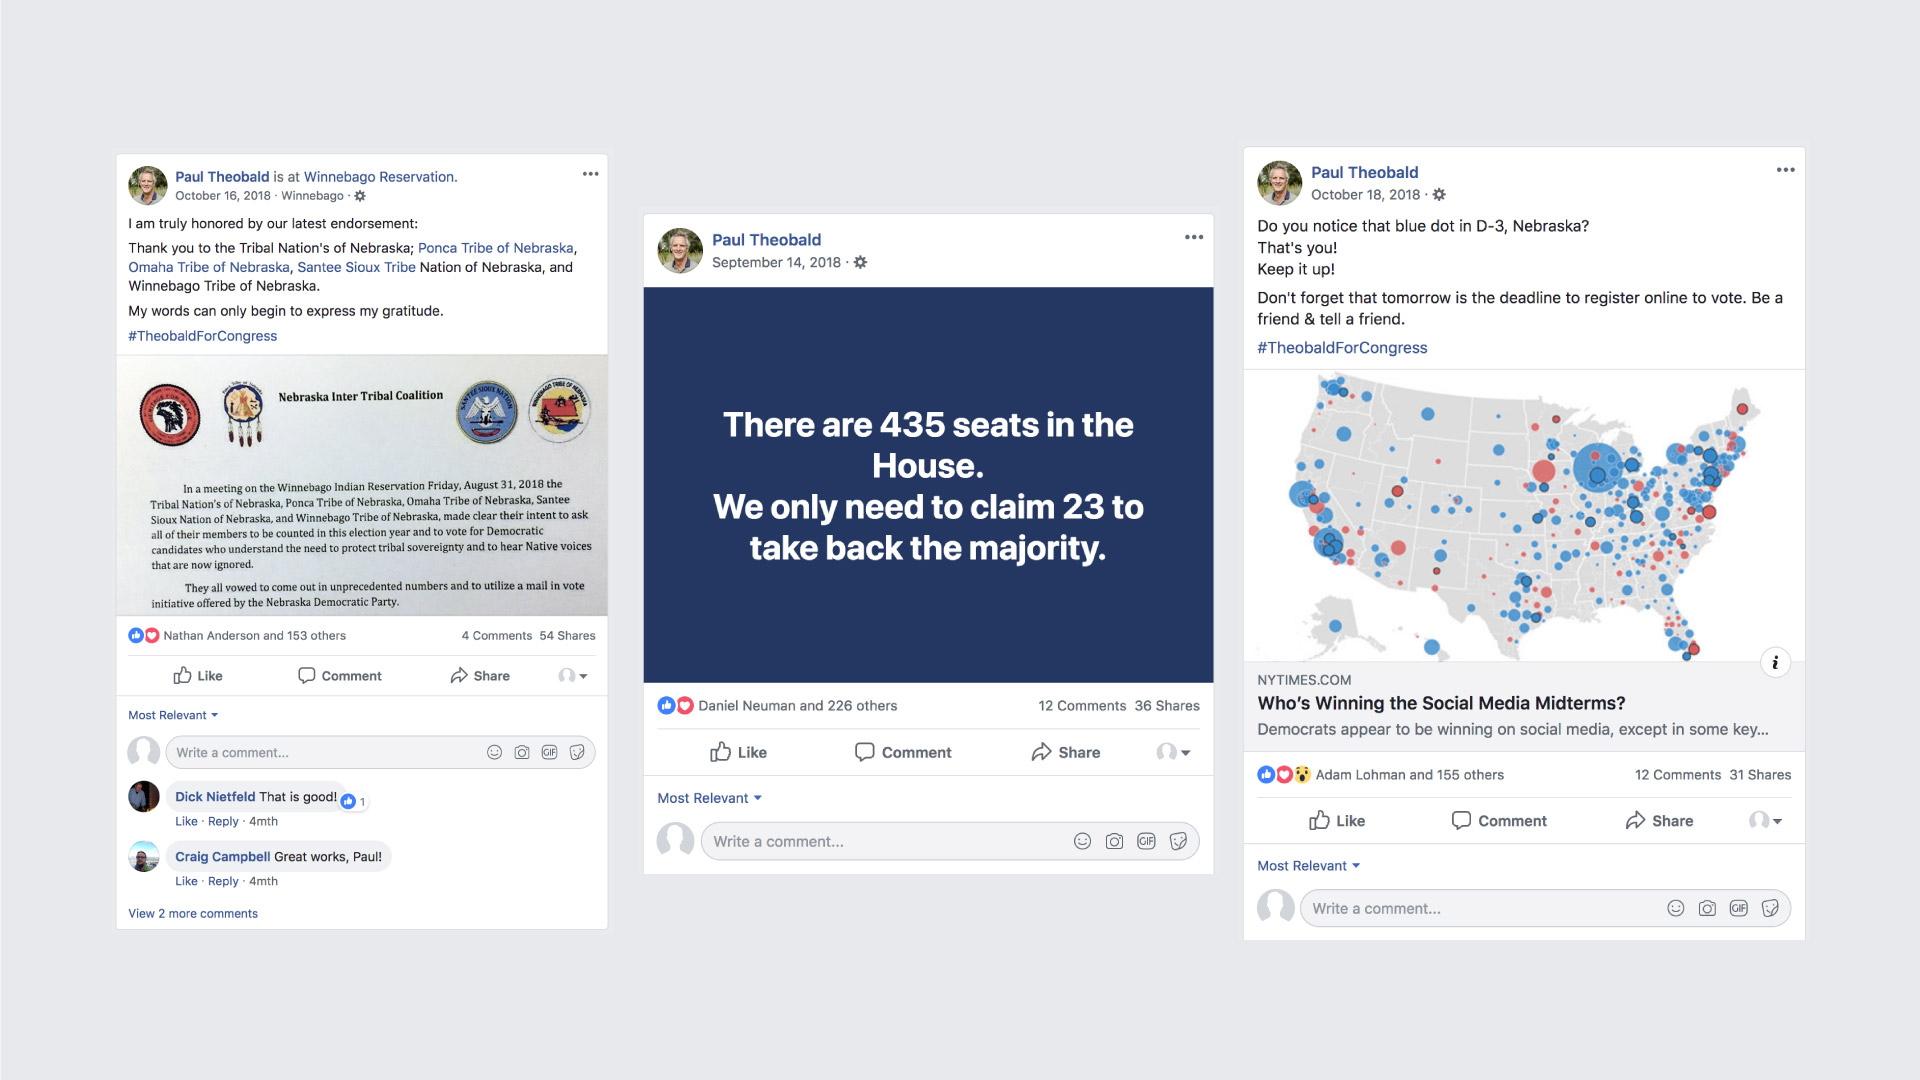 Facebook screenshots detailing Paul Theobald campaign highlights